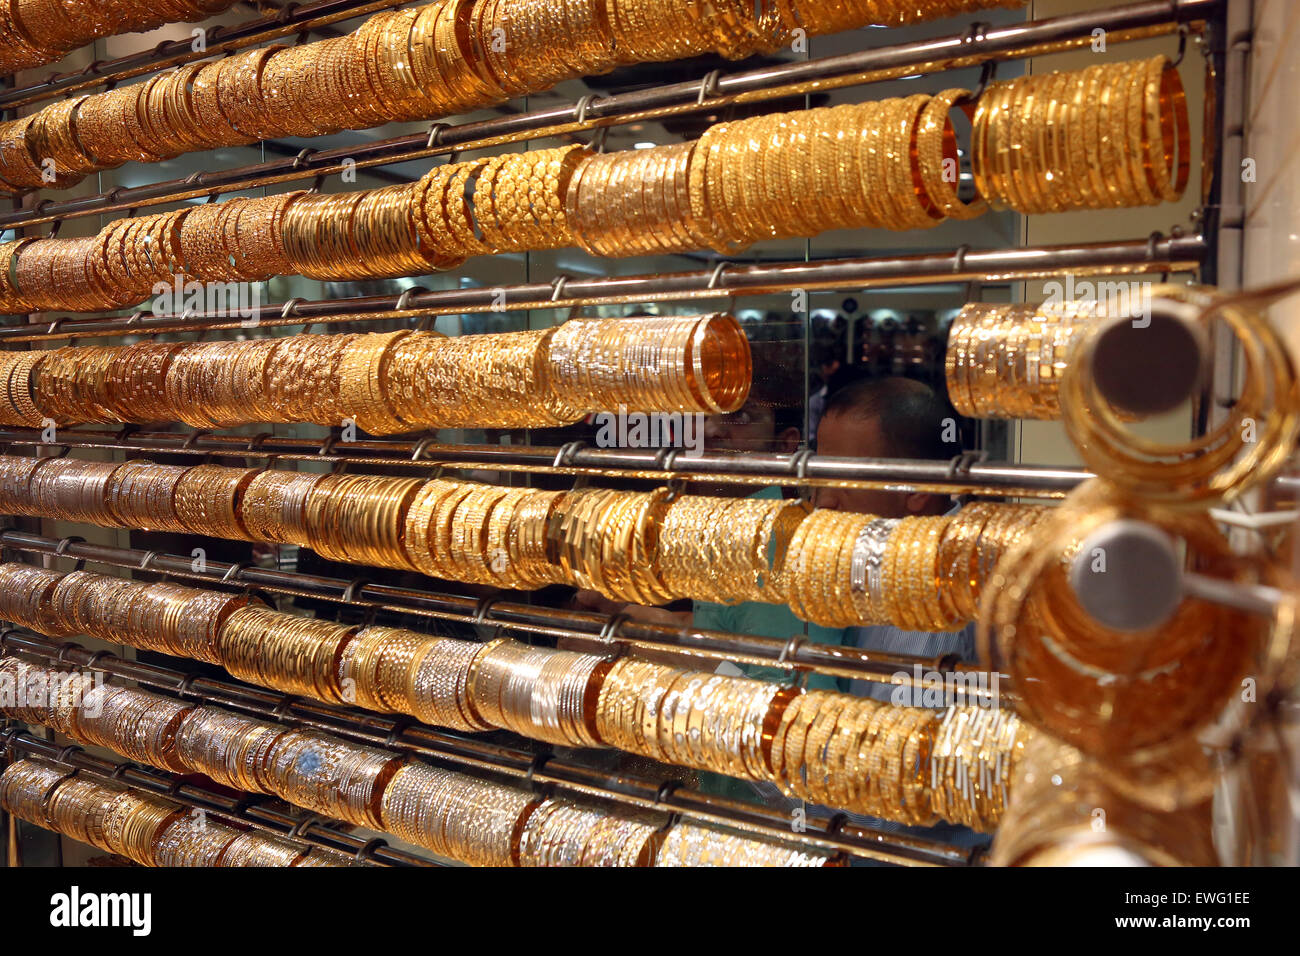 Dubai, United Arab Emirates, golden bracelets in a shop window - Stock Image